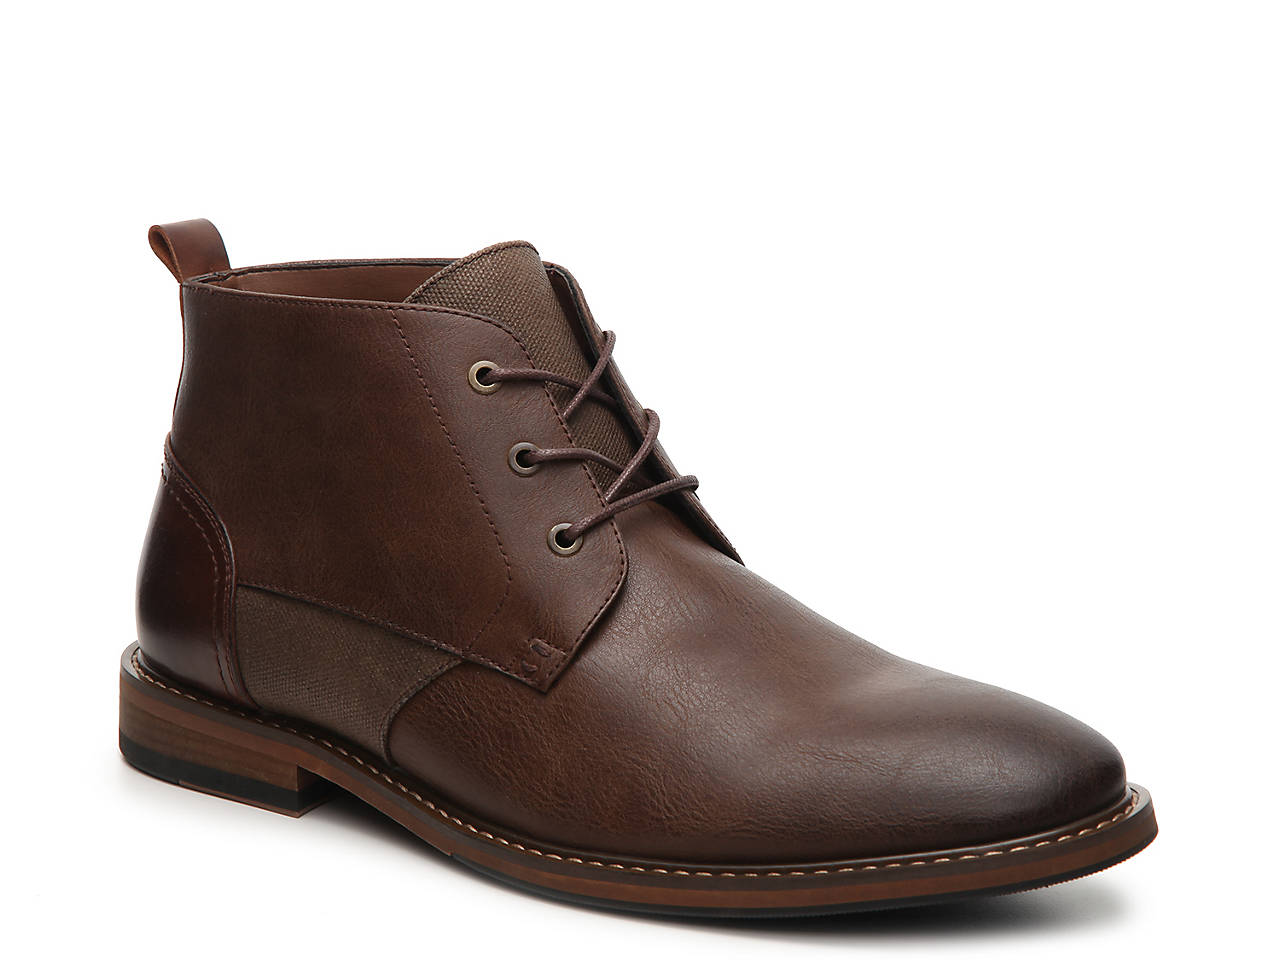 Mens Dress Shoes And Boots